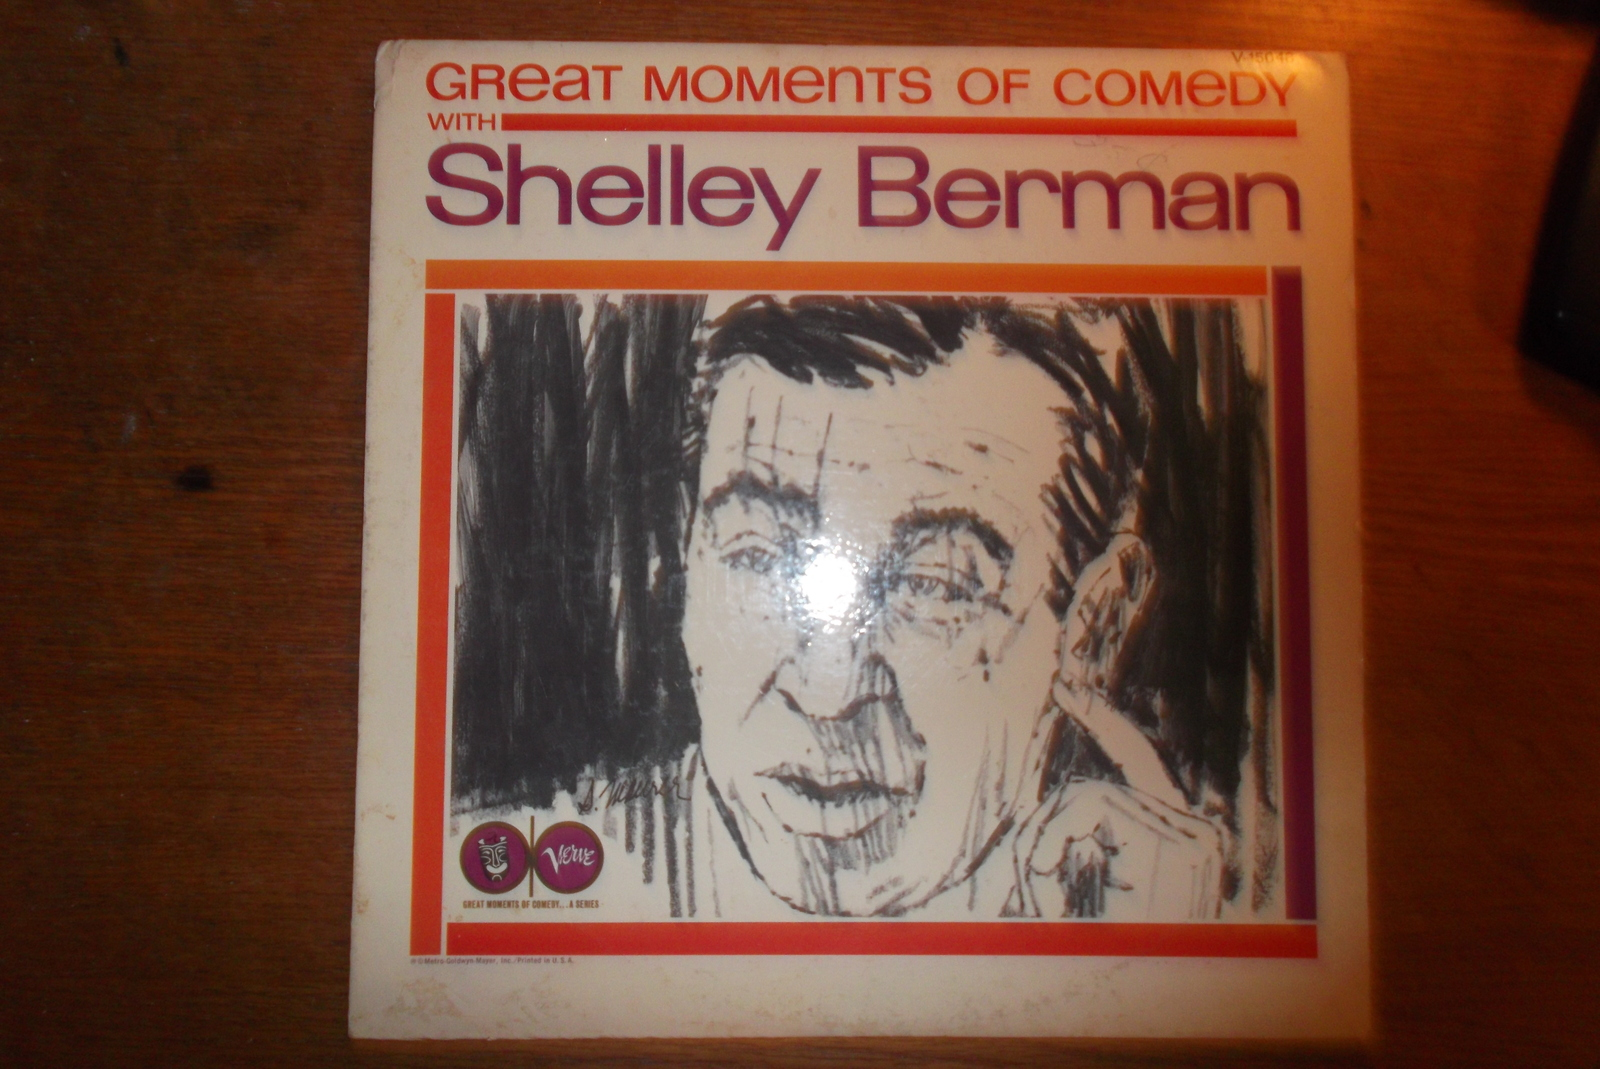 Shelley Berman Wallpapers See the small card with the code on it The seller printed that out